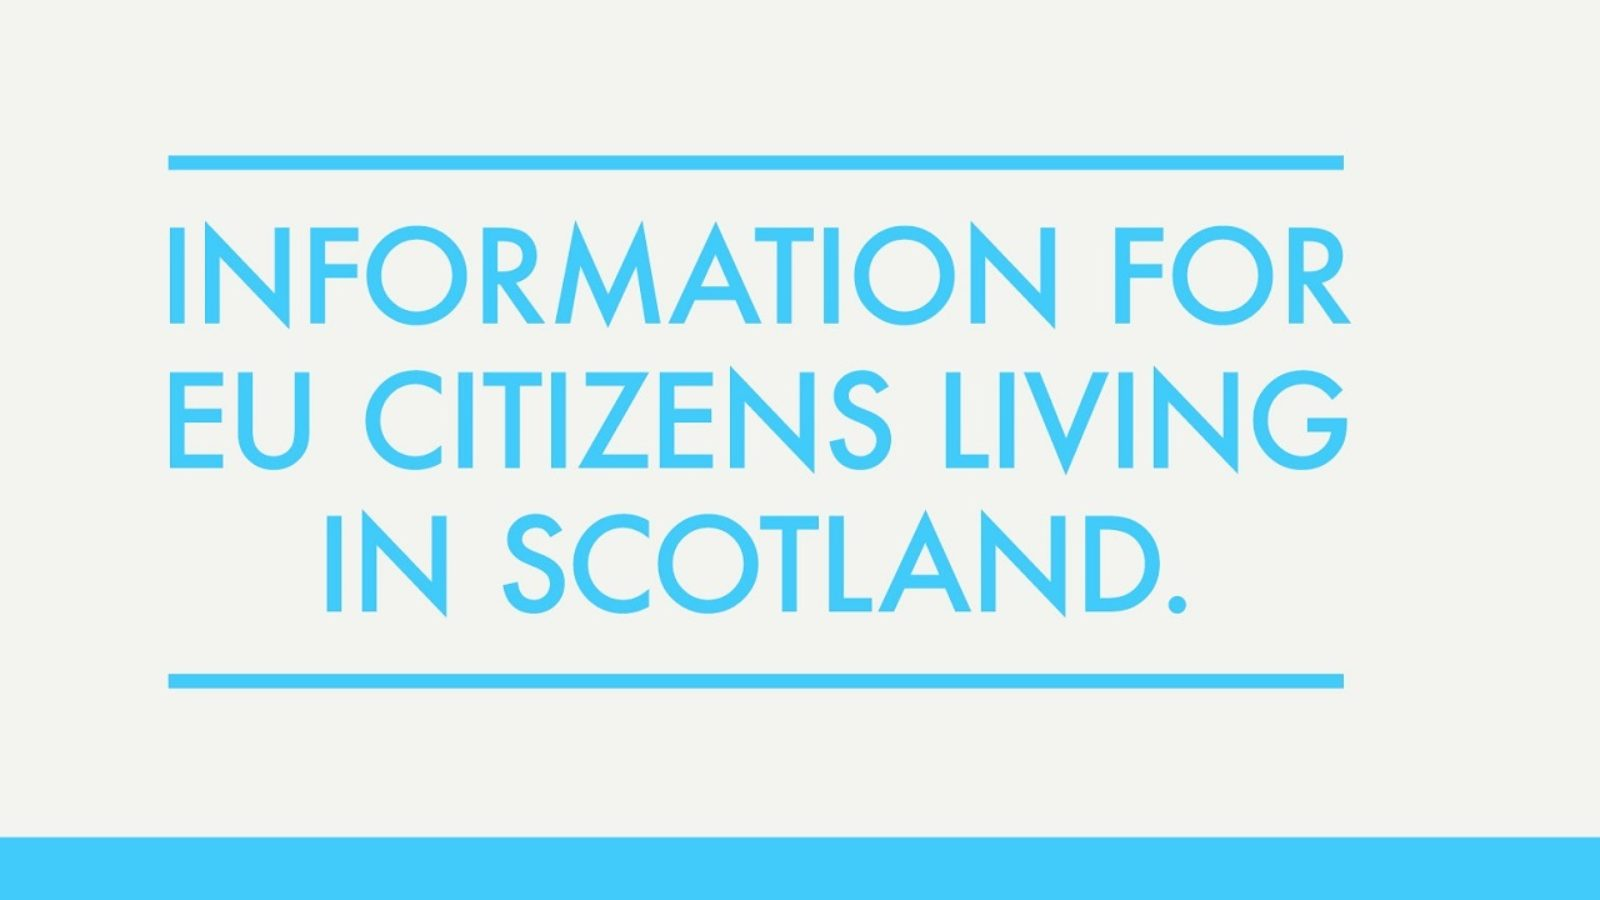 Stay in Scotland toolkit launched to help guide people on how to apply to the EU Settlement Scheme